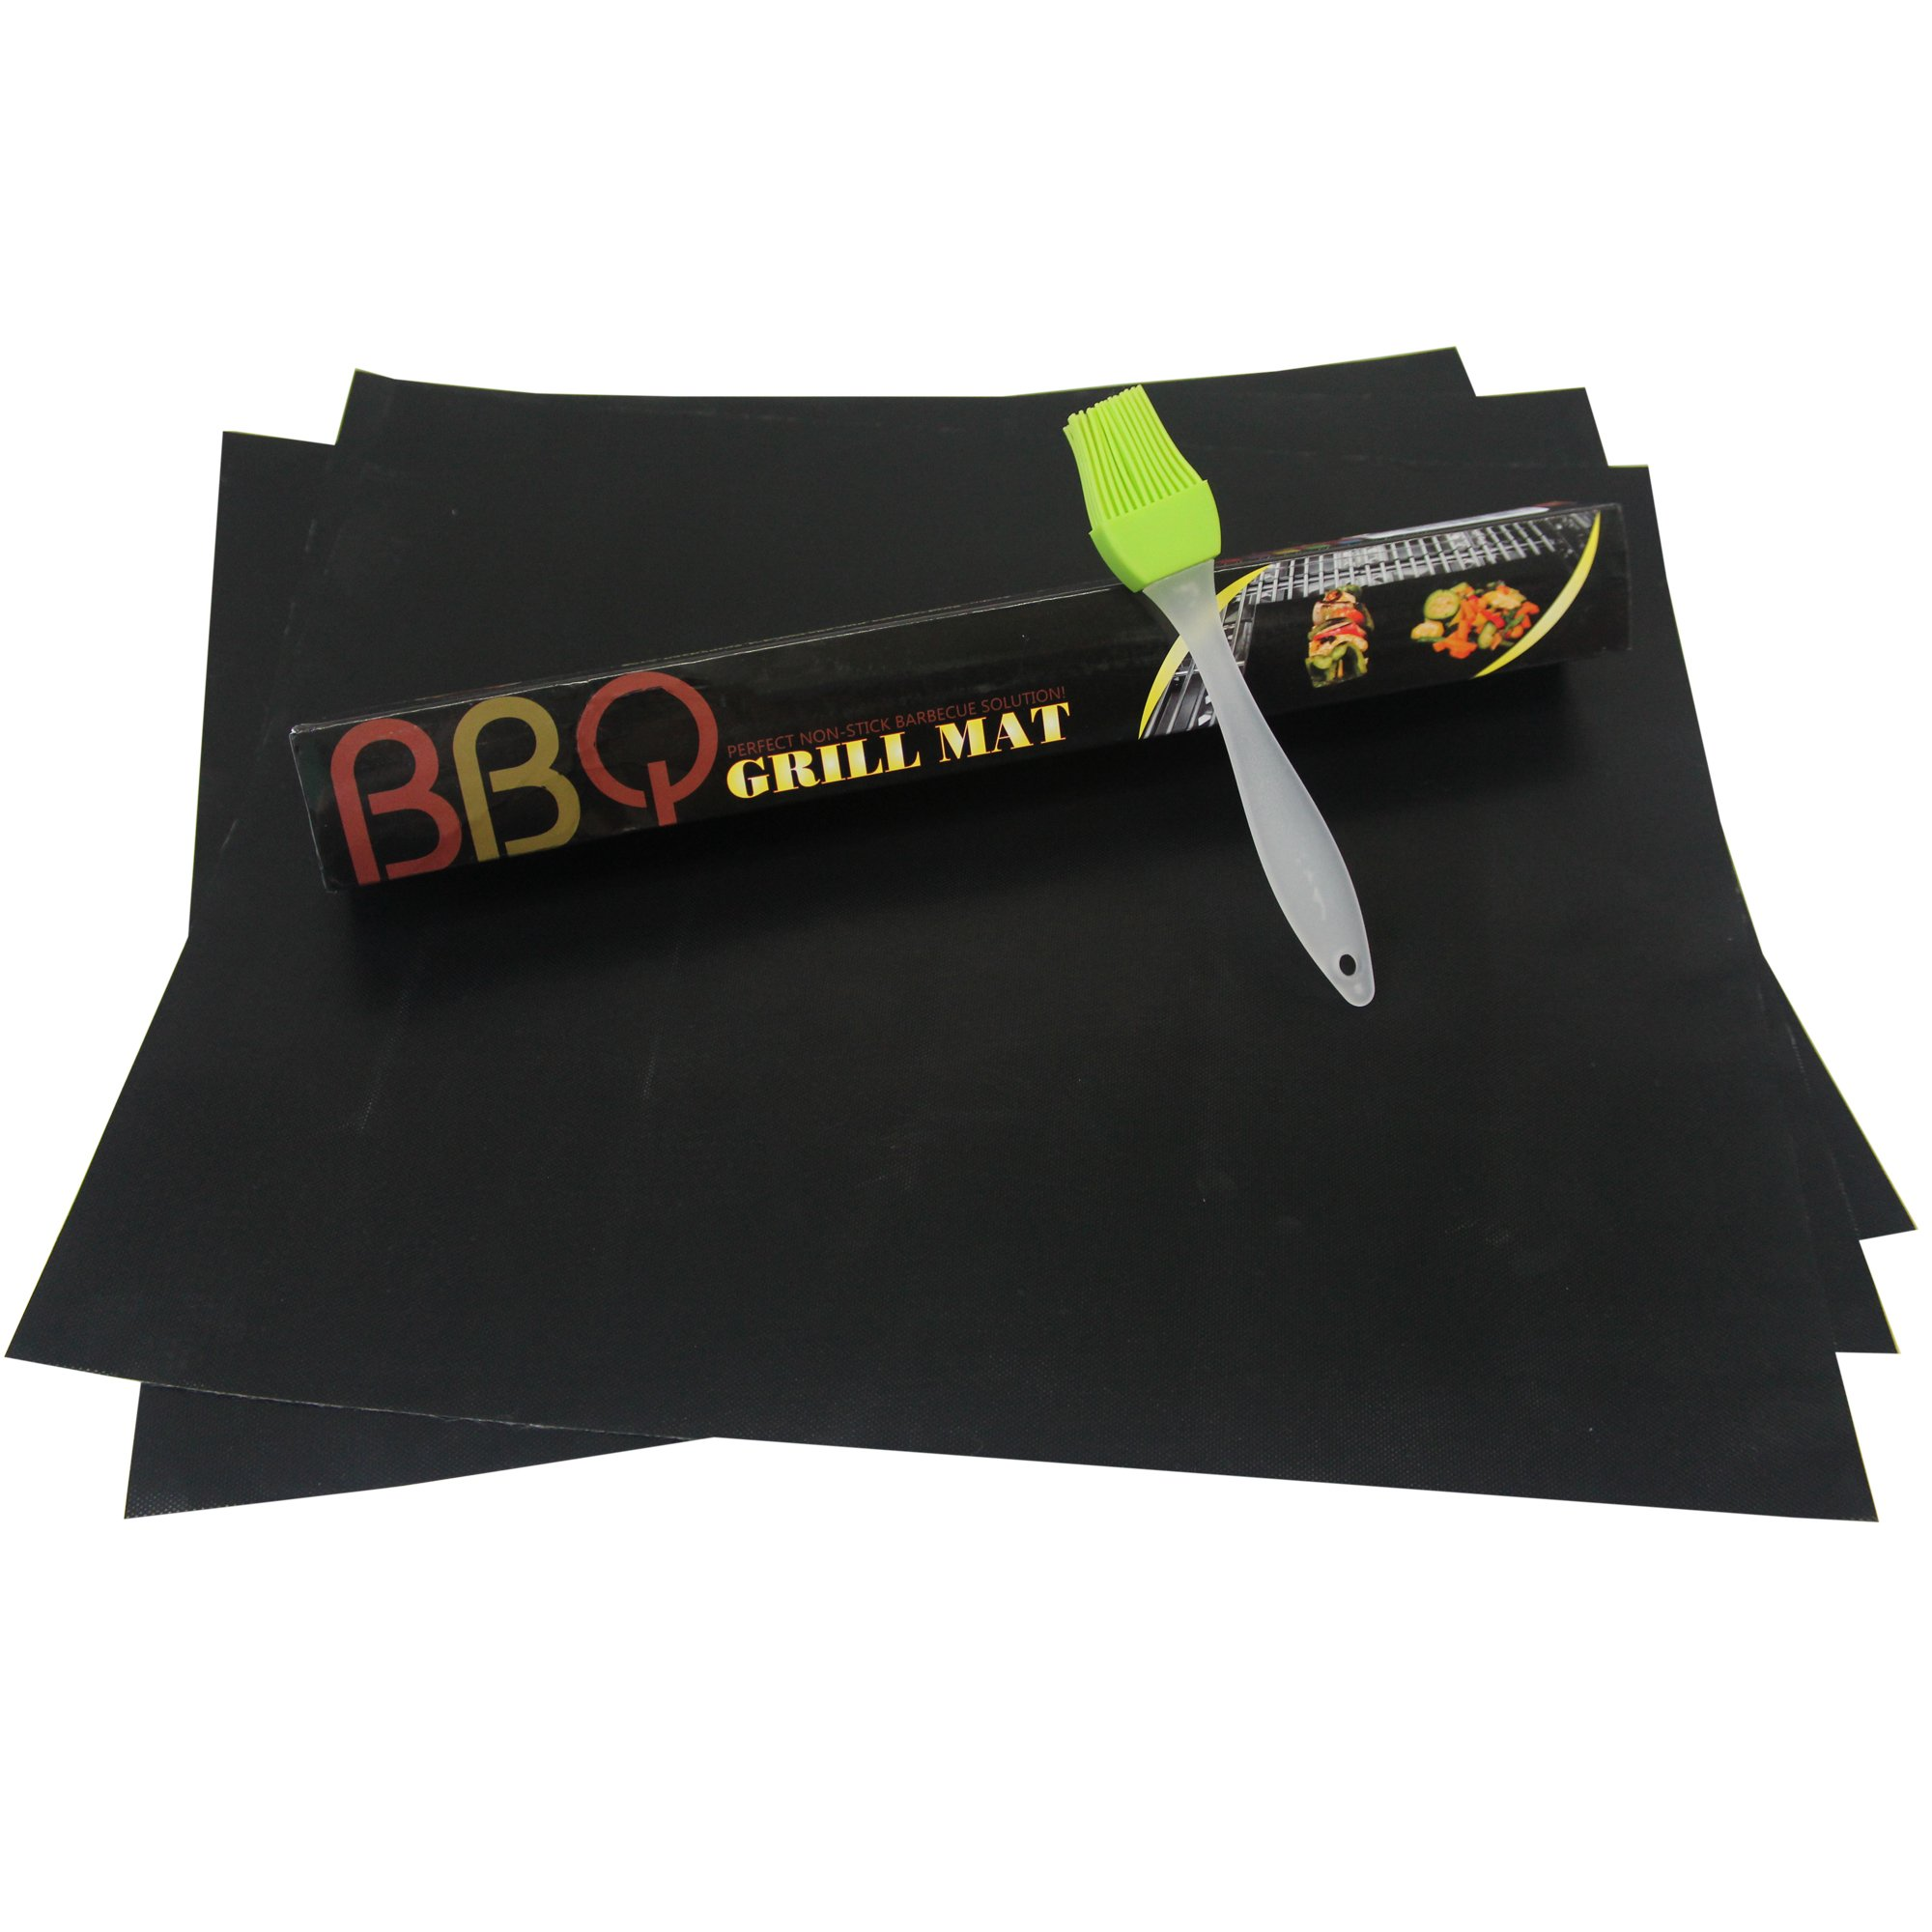 Best Nonstick Oven Liner is PFOA, BPA Free and FDA approved. 3 Pack is perfect for your BBQ, ovens & can be used as a Grill Mat. Easy to clean durable, heavy duty, non stick, waterproof Teflon surface